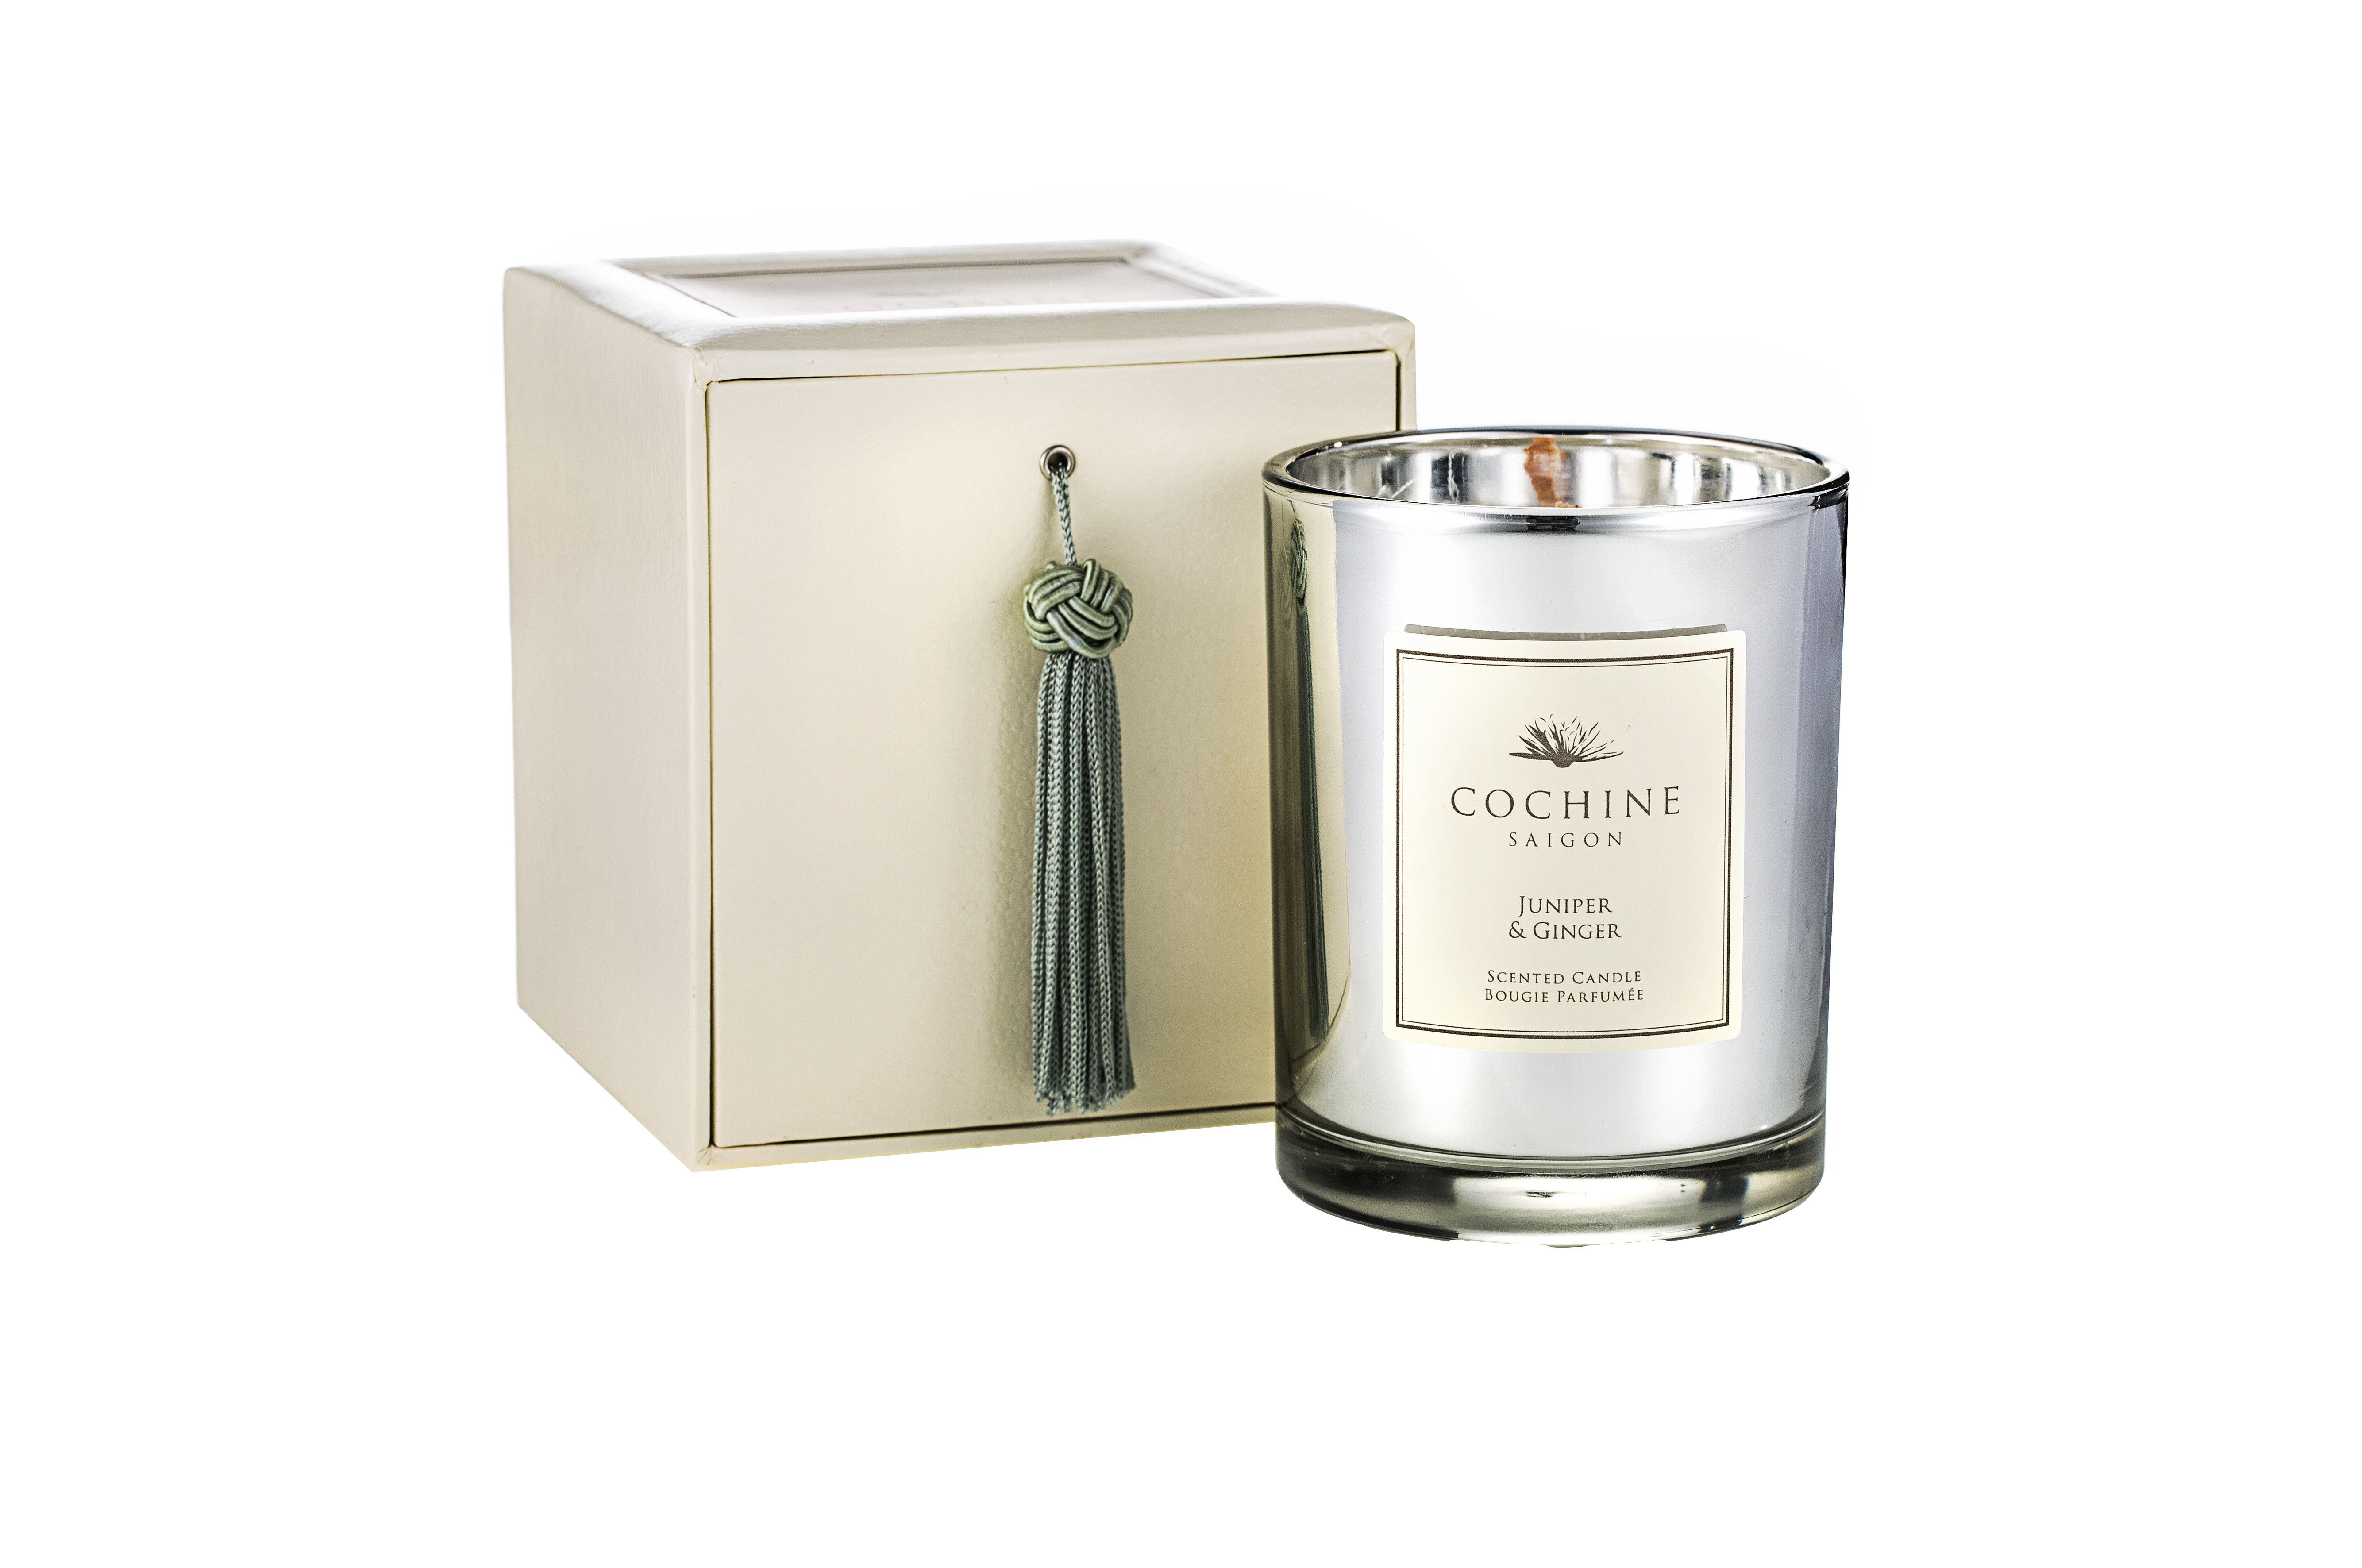 Sumptuous Scented Candles Best 2014 Homeware Natural Soy Wax Moody Pack Living Room Interiors